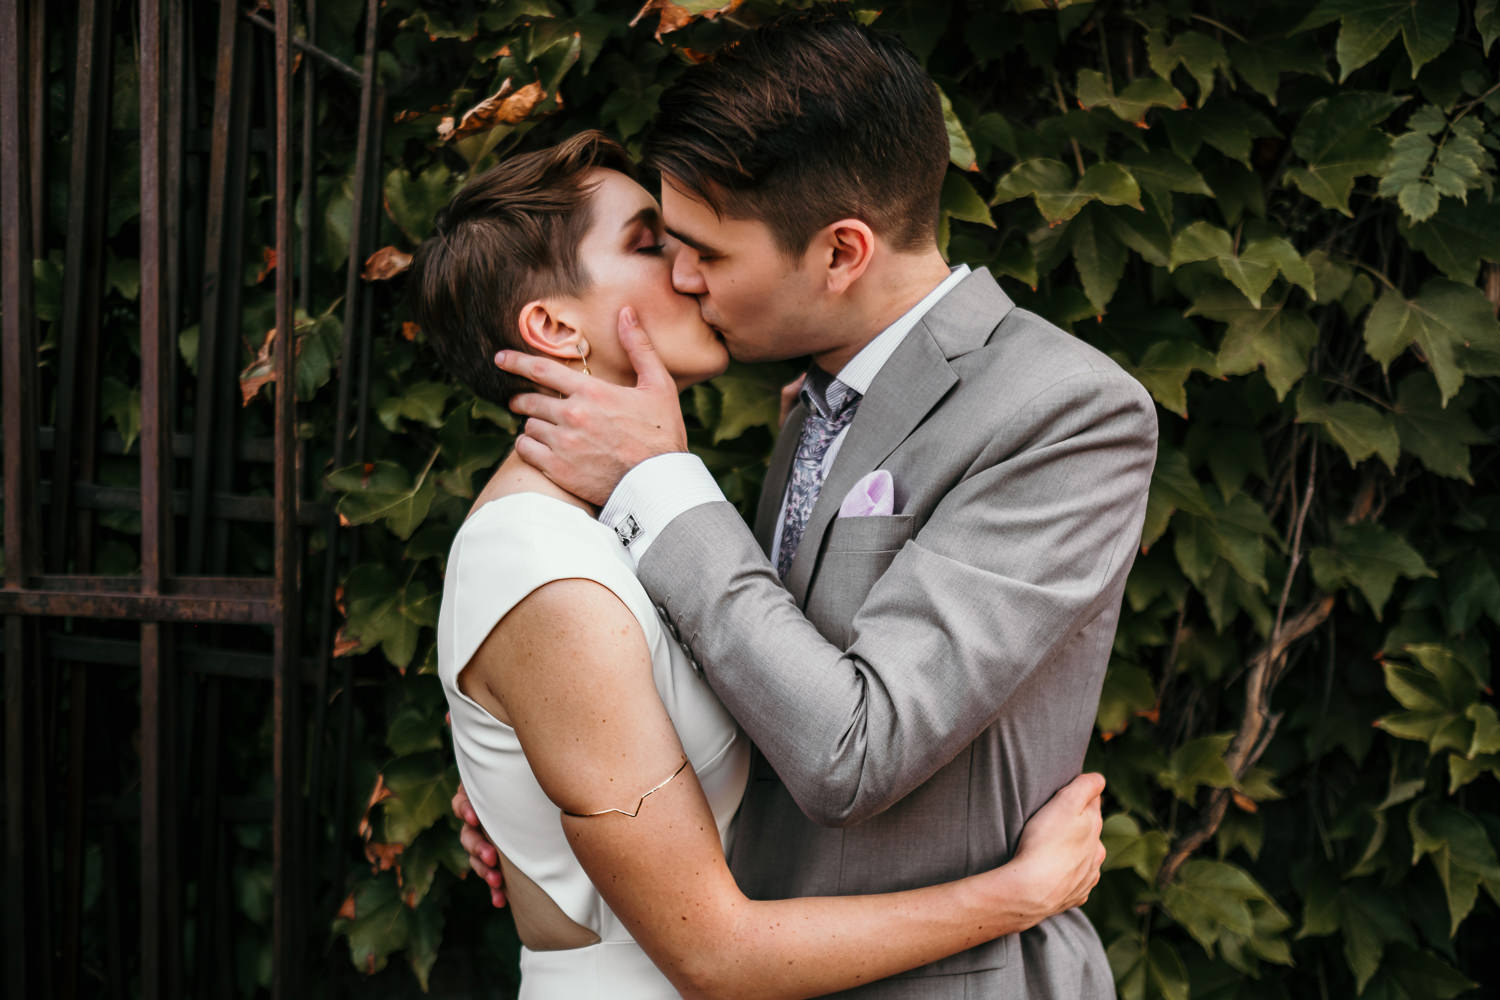 newlyweds hugging and kissing in front of green leaf covered wall